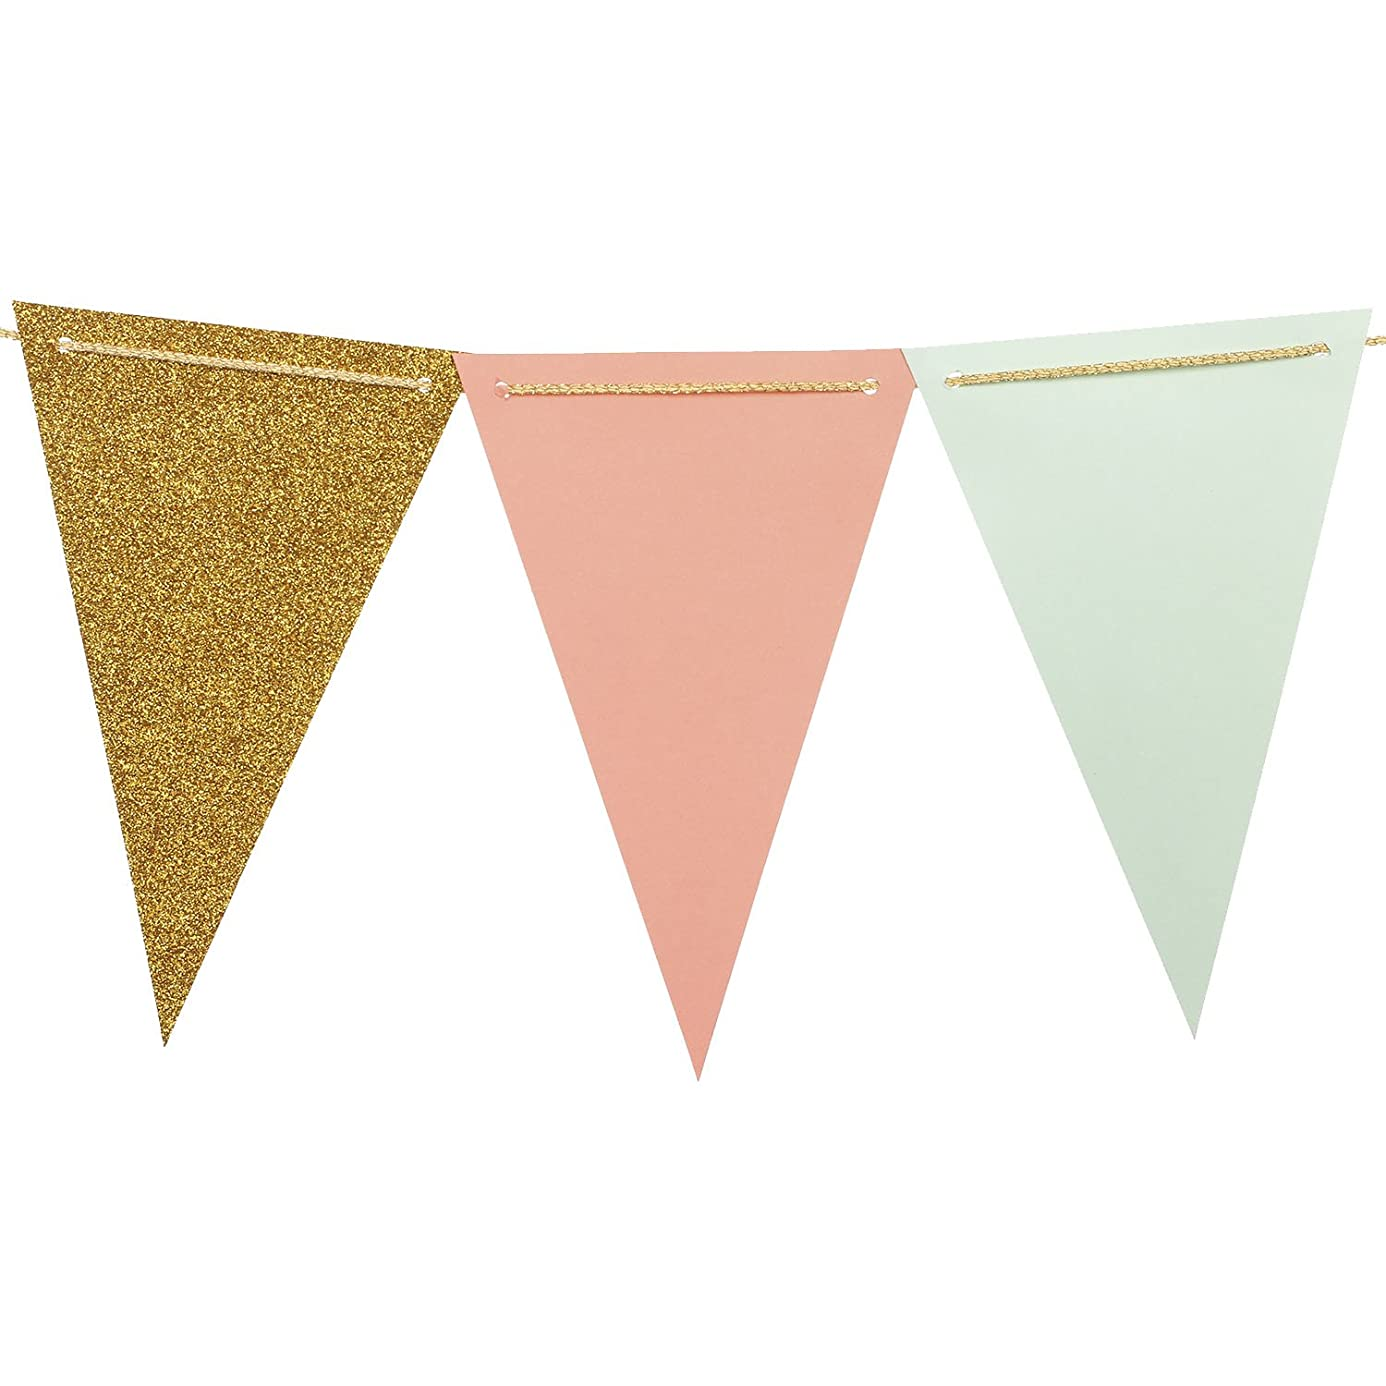 Ling's moment Paper Triangle Bunting Banner Flags, Boho Chic Pennant Banner Garland for Wedding, Baby Nursery, Bridal Shower, Birthday, Event & Party Supplies, 15pcs Flags(Mint+Coral+Gold Glitter) xqp6943765